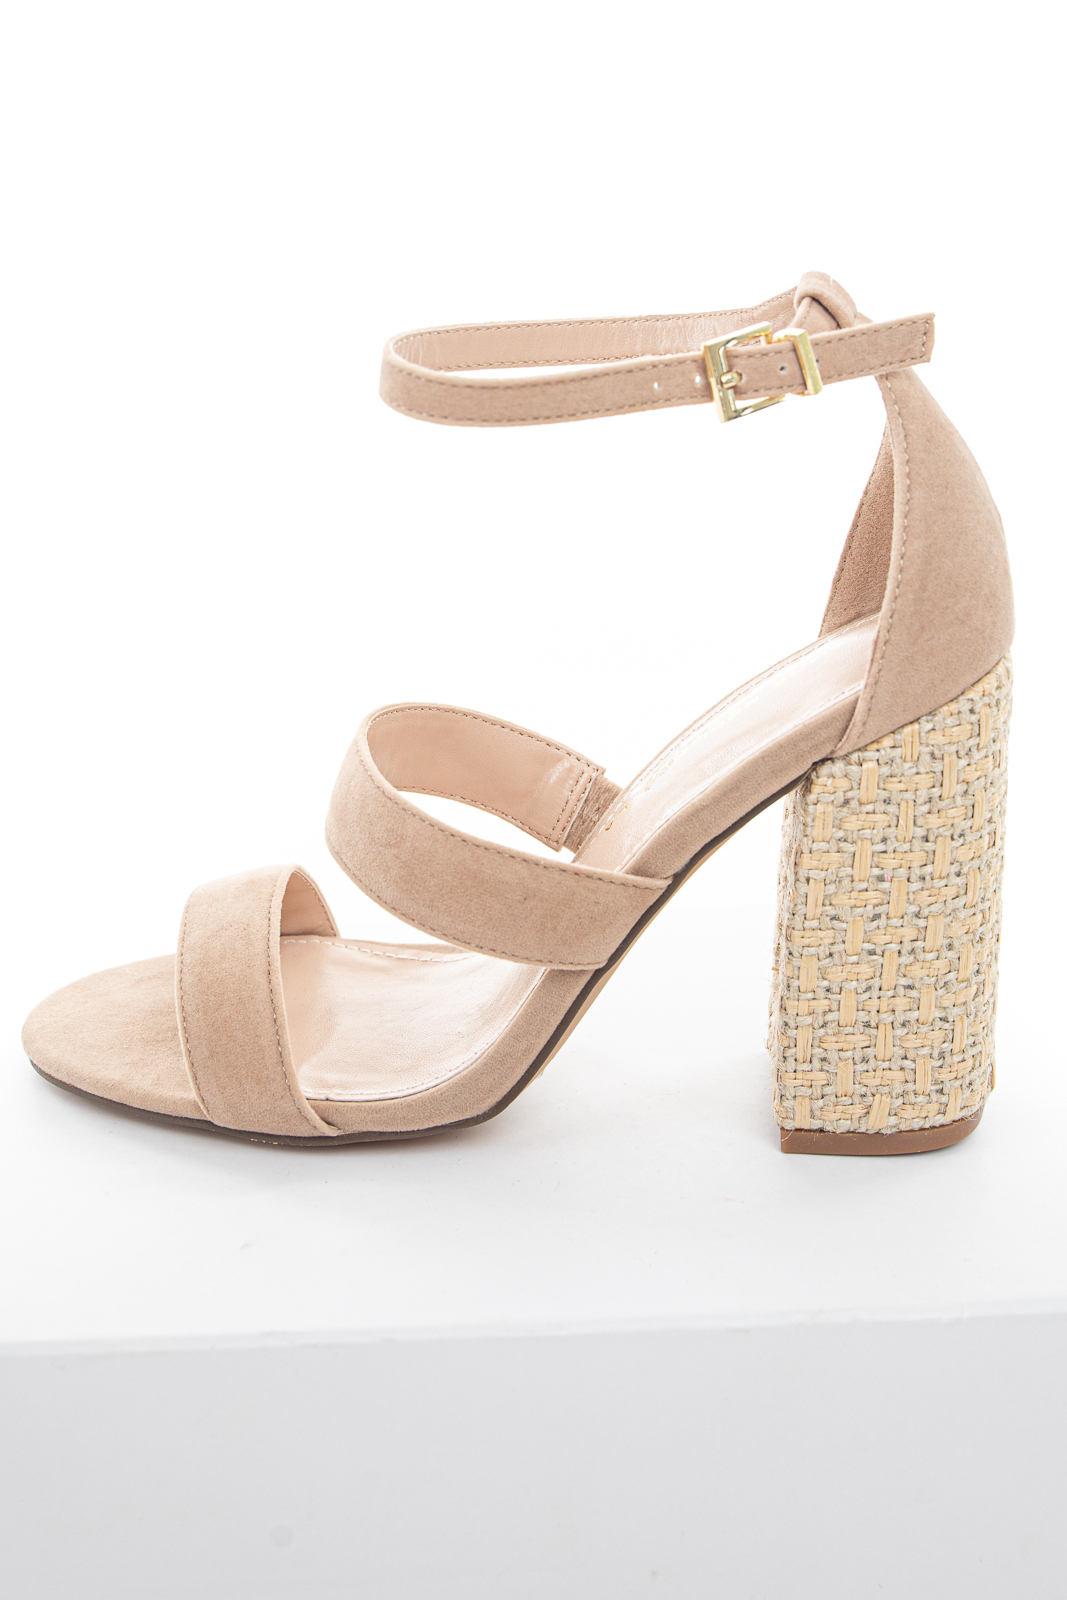 Nude Faux Suede Strappy High Heels with Woven Twine Detail